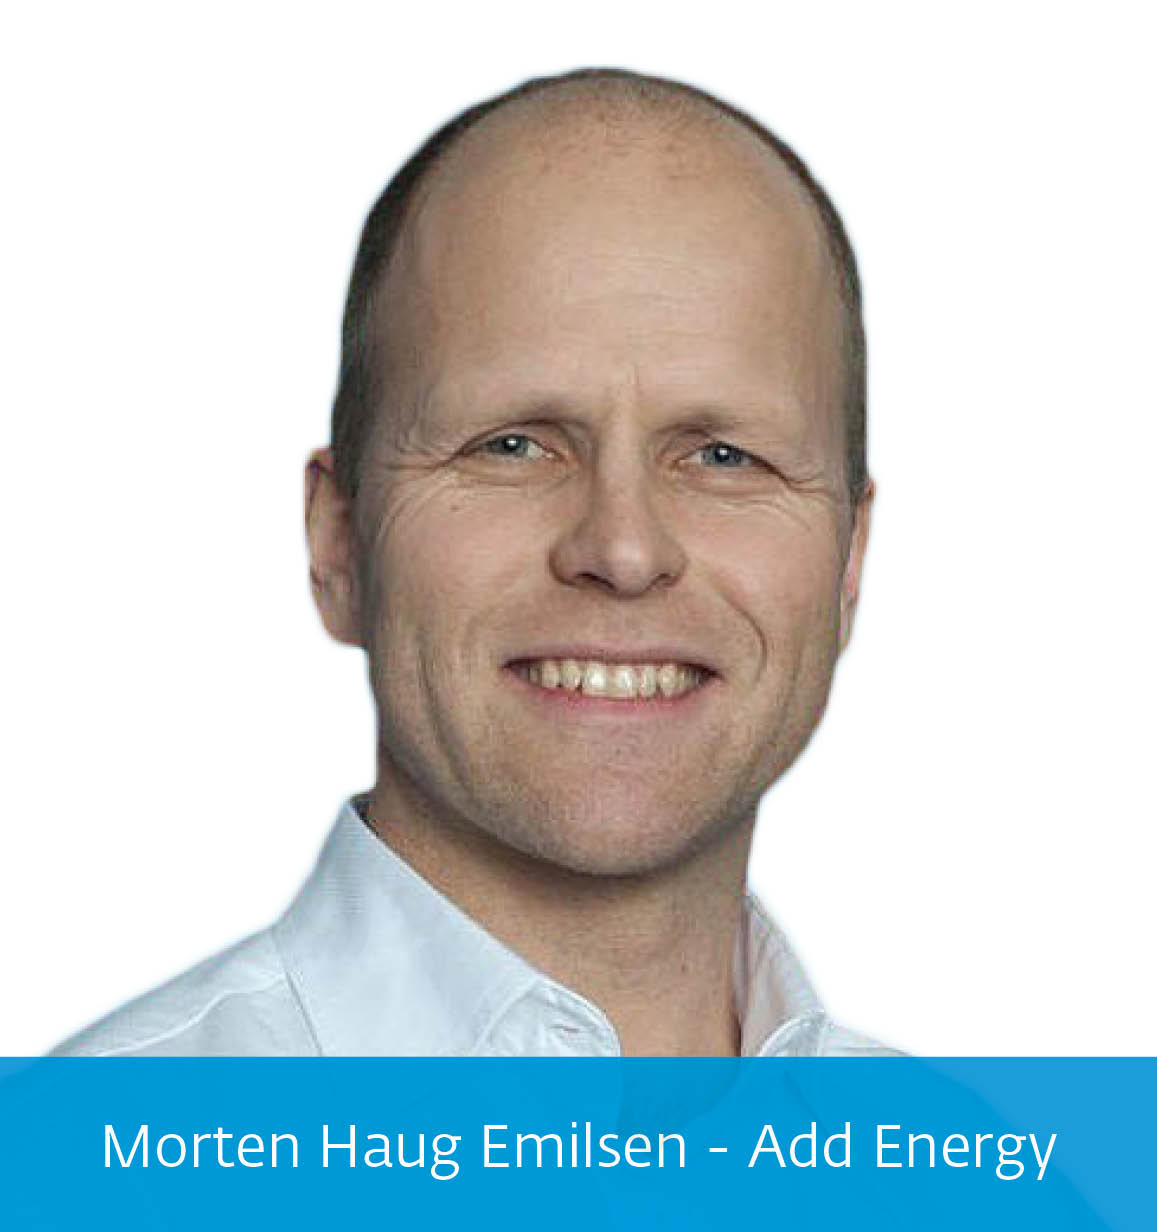 Morten Haug Emilsen - Add Energy